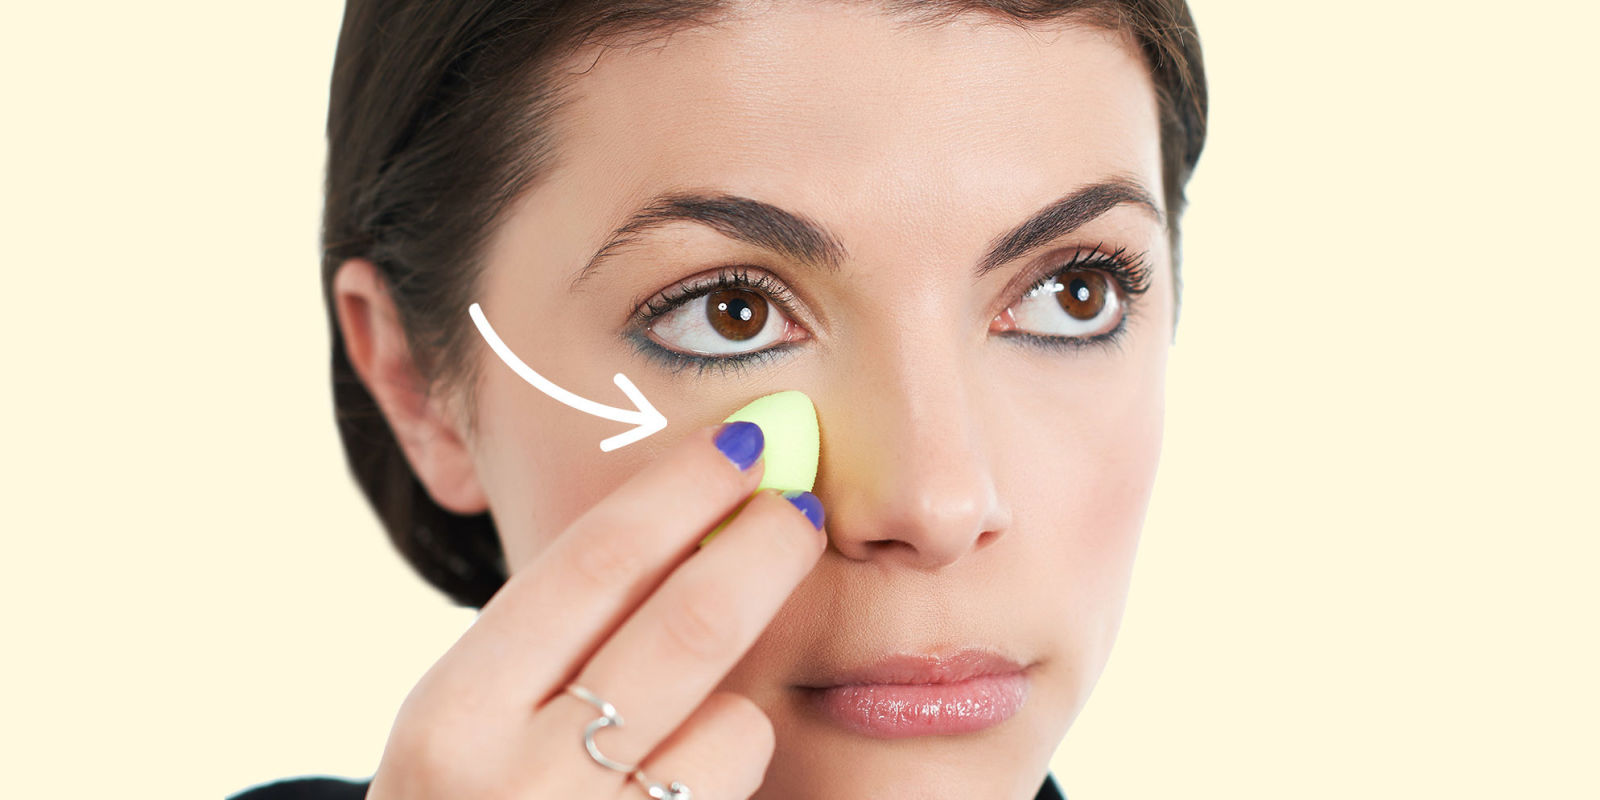 100 bedroom eyes makeup how to hide acne with for Bedroom eyes makeup